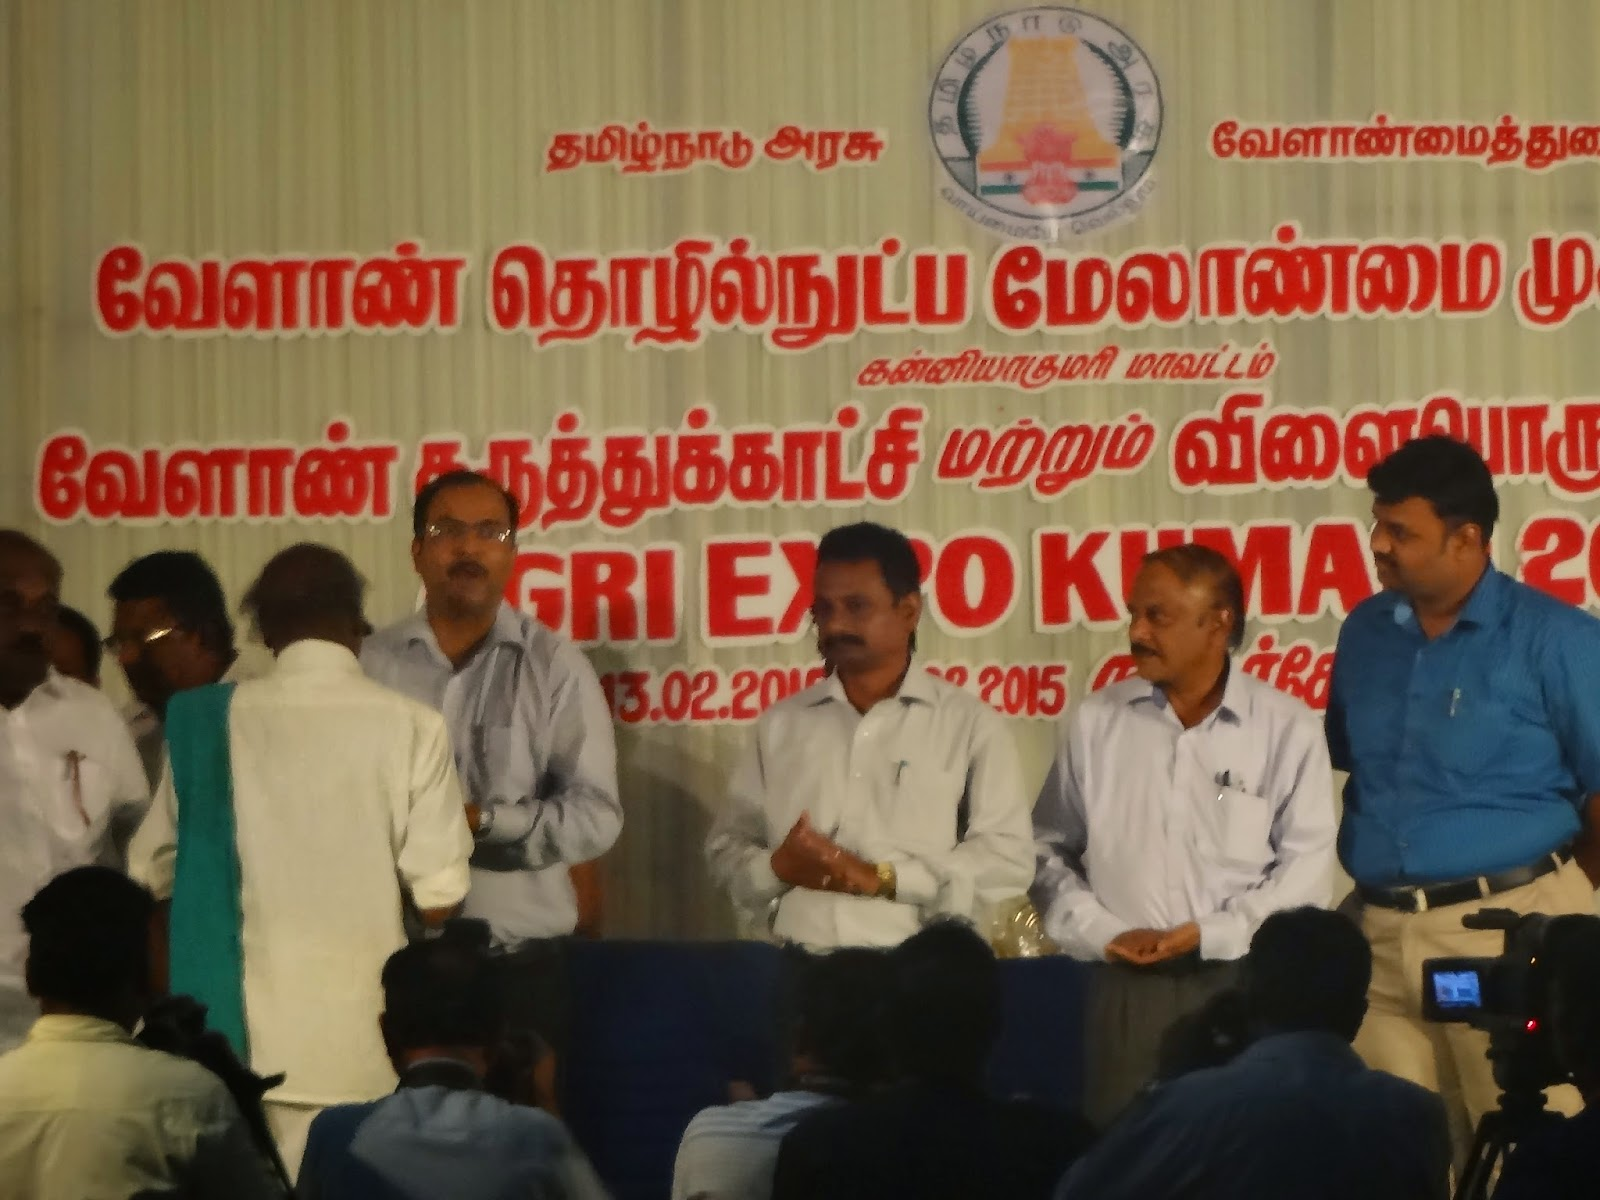 kanyakumari this event brings to the mind what was written by roger rosenblatt in one of his time magazine essay